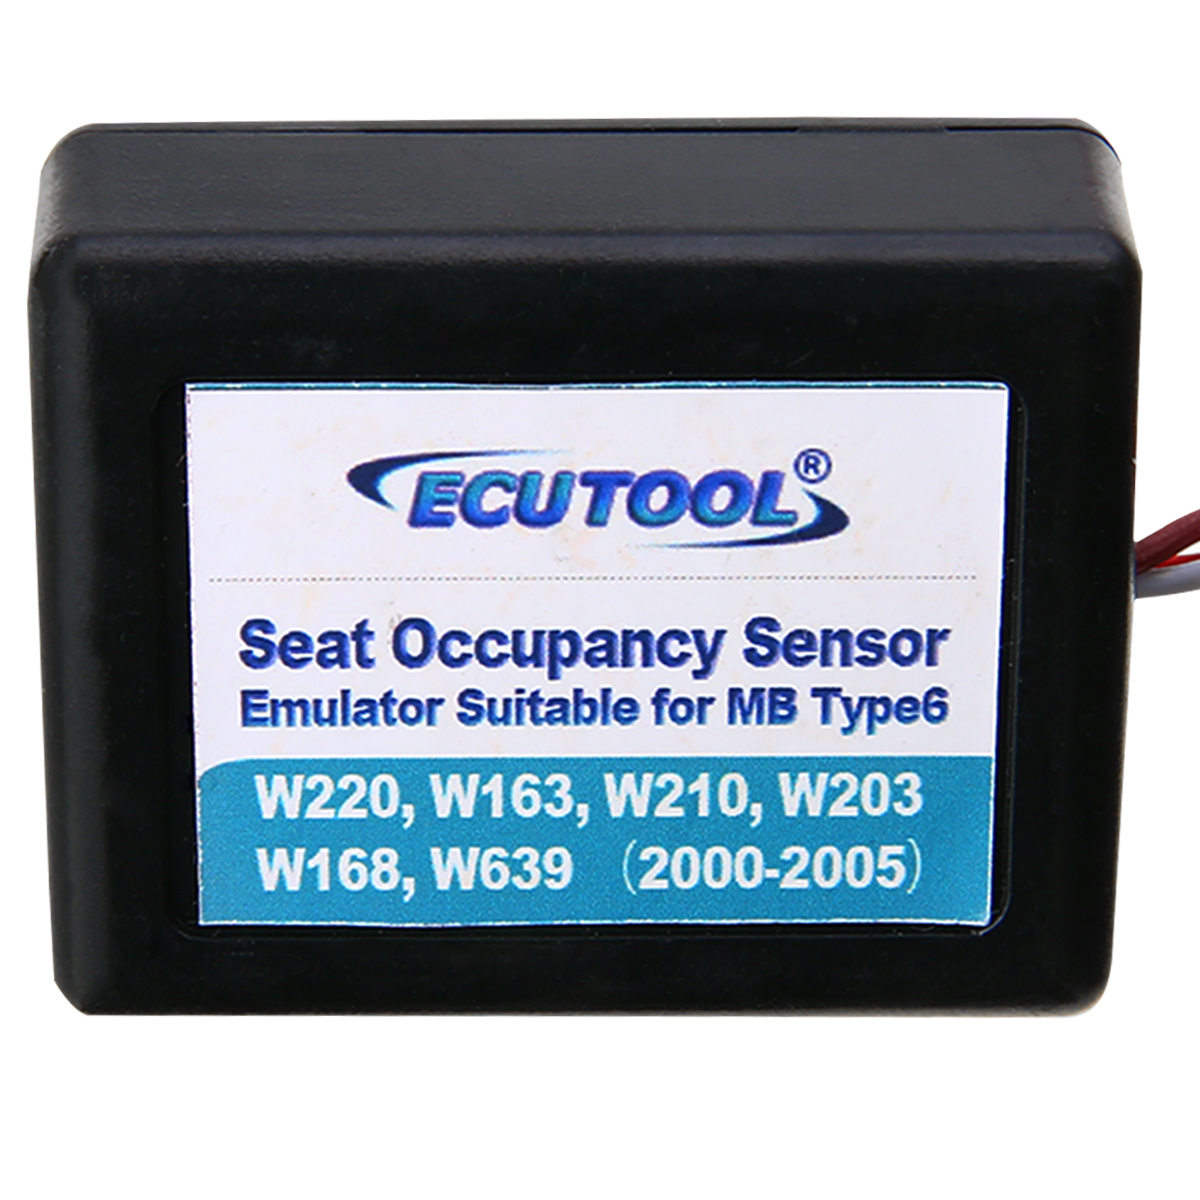 Image 4 - MAYITR Seat Occupancy Sensor Emulator Support MB Type 6 SRS for Mercedes Benz W220 W163 W210 W203 W168 W639 2000 2005-in Air Bag Scan Tools & Simulators from Automobiles & Motorcycles